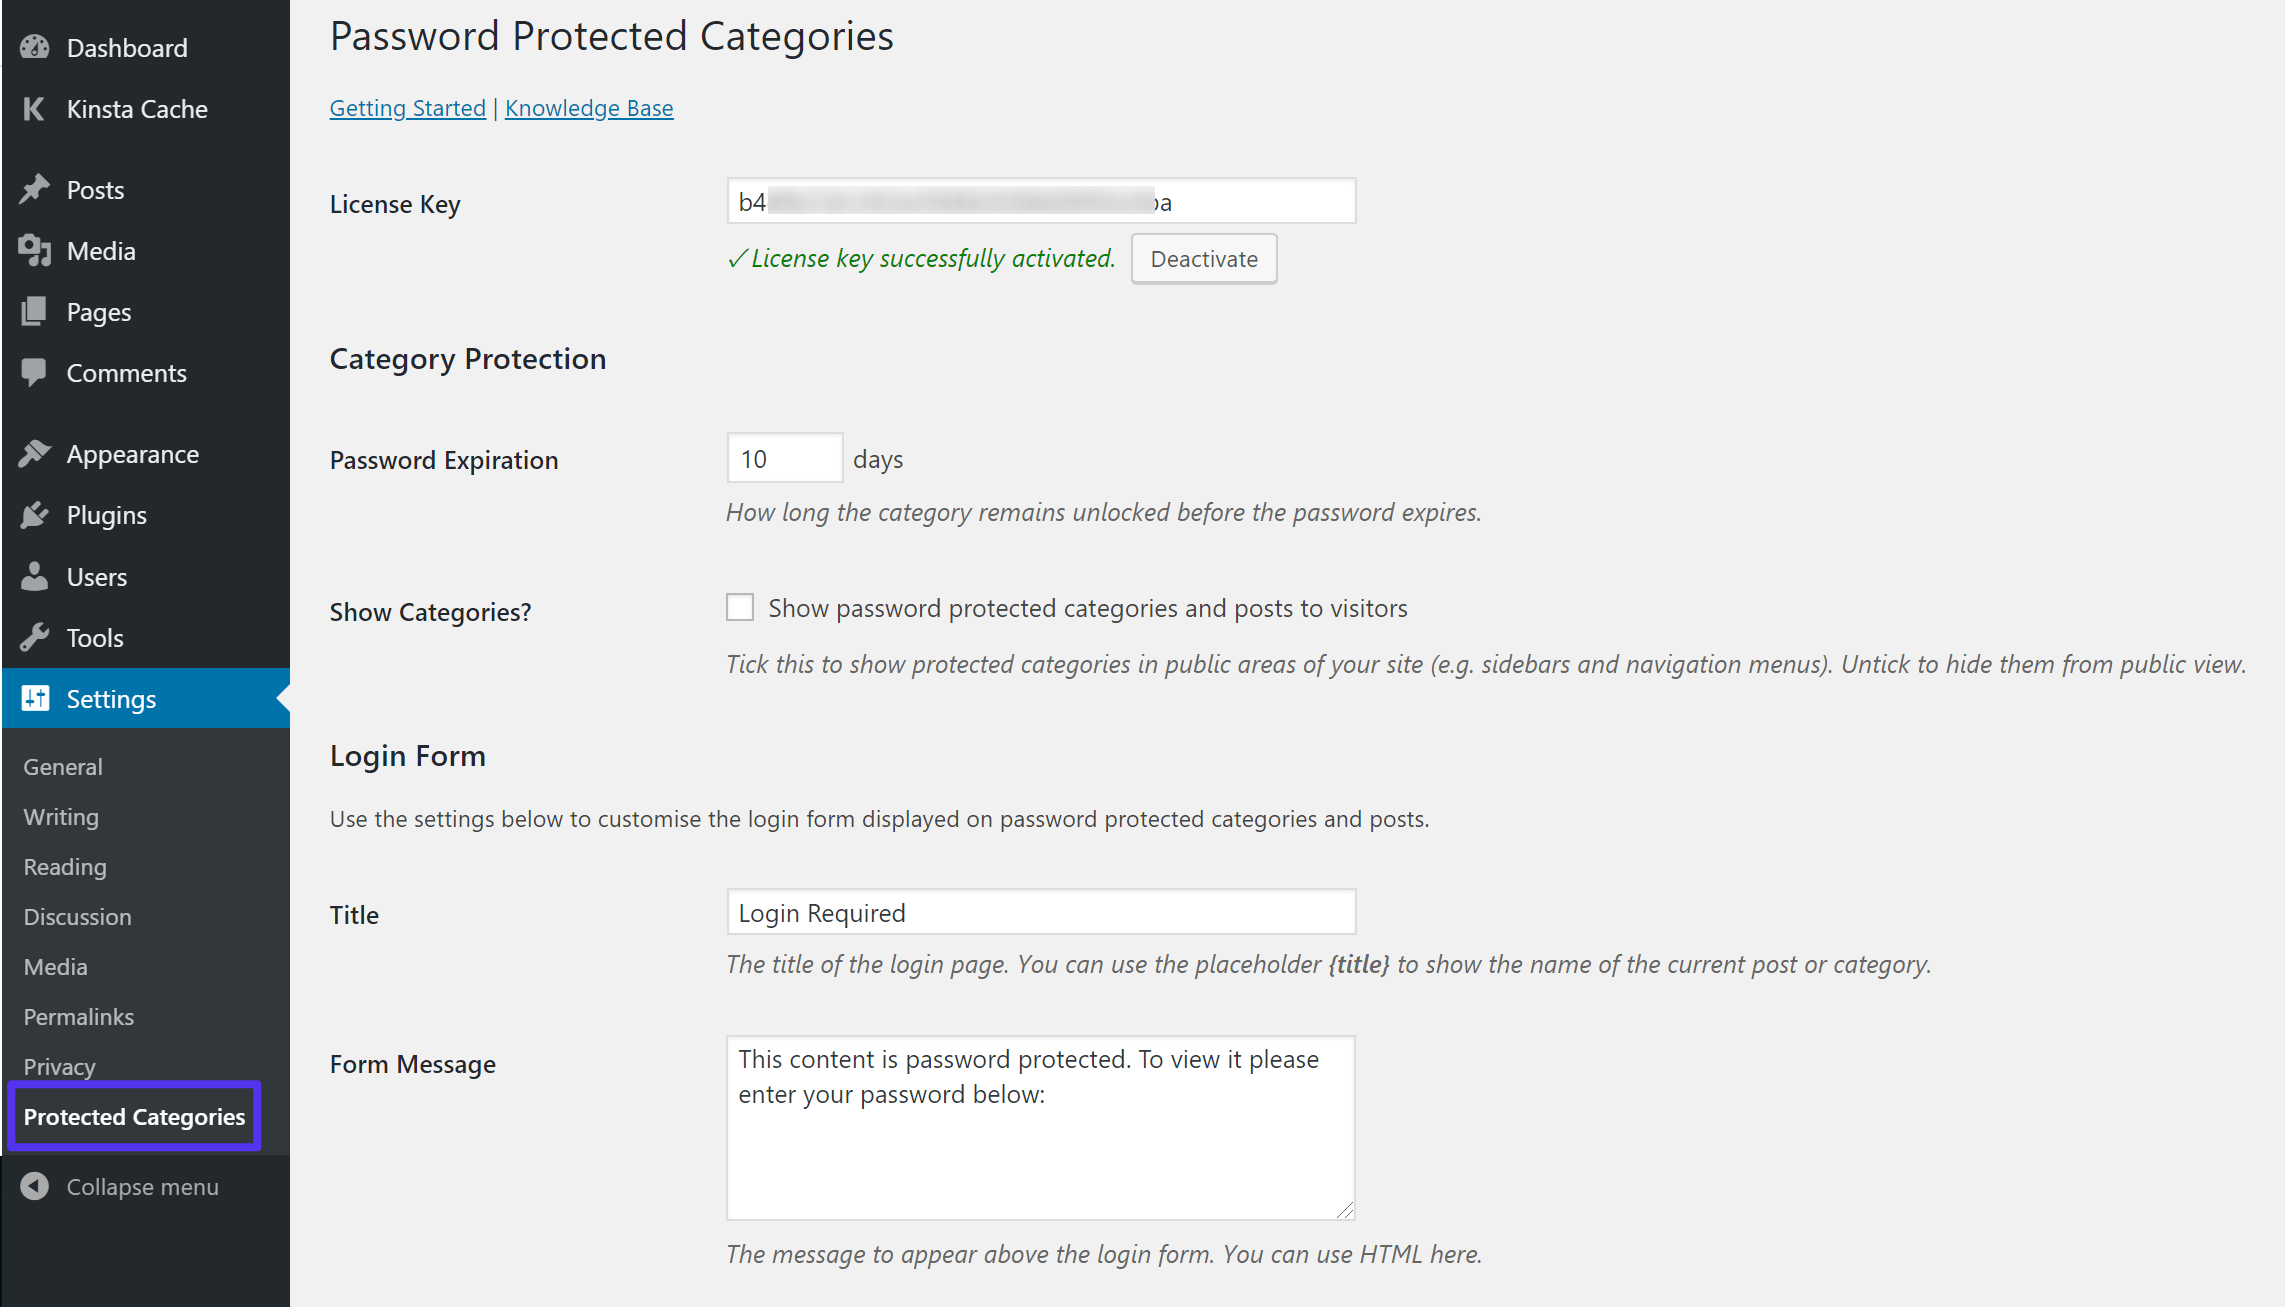 Password Protected Categories settings